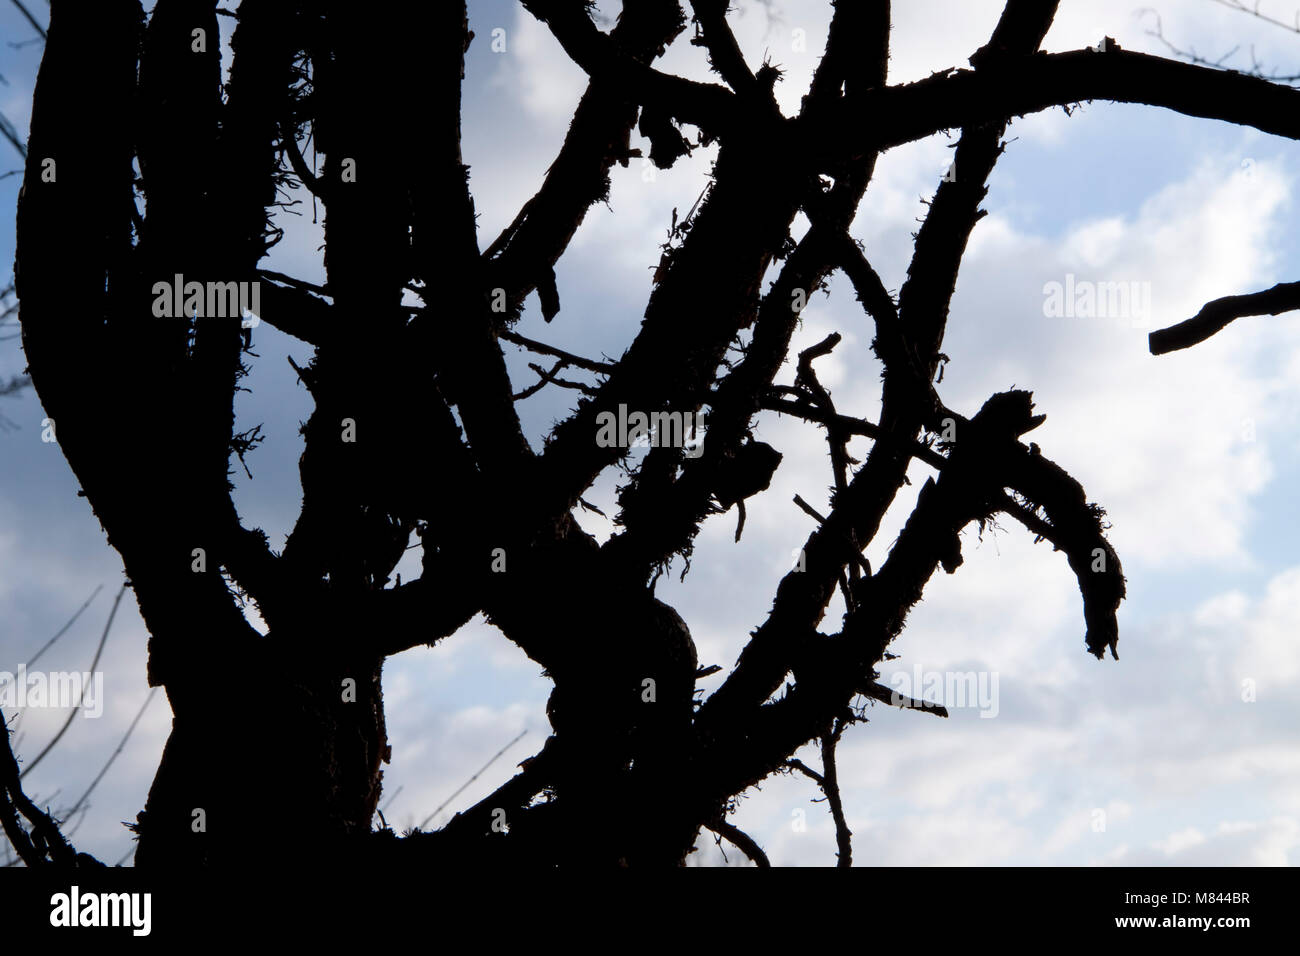 British countryside trees in silhouette - Stock Image